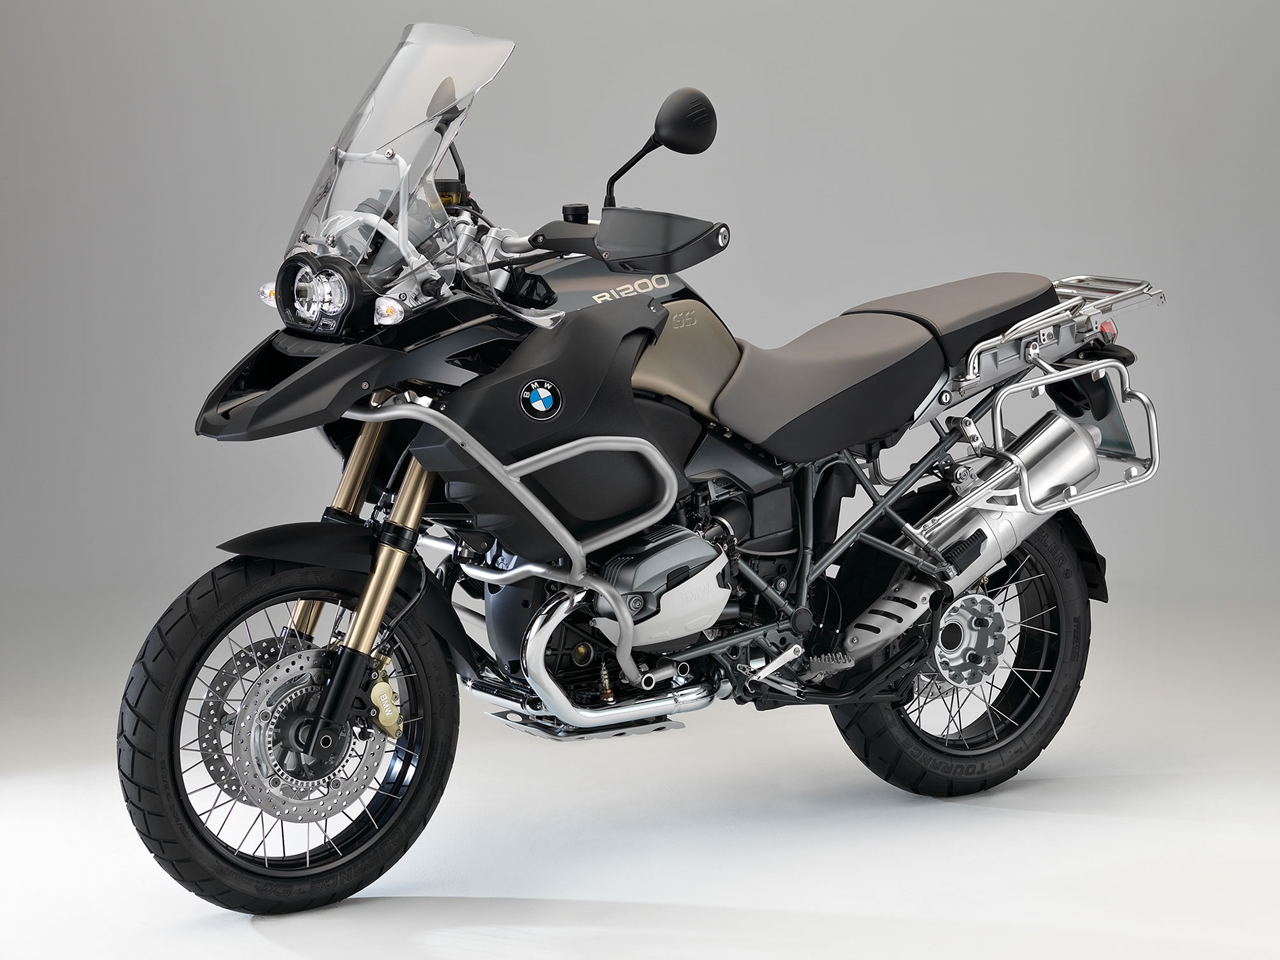 Picture for category R 1200 GS Adventure (2014-)